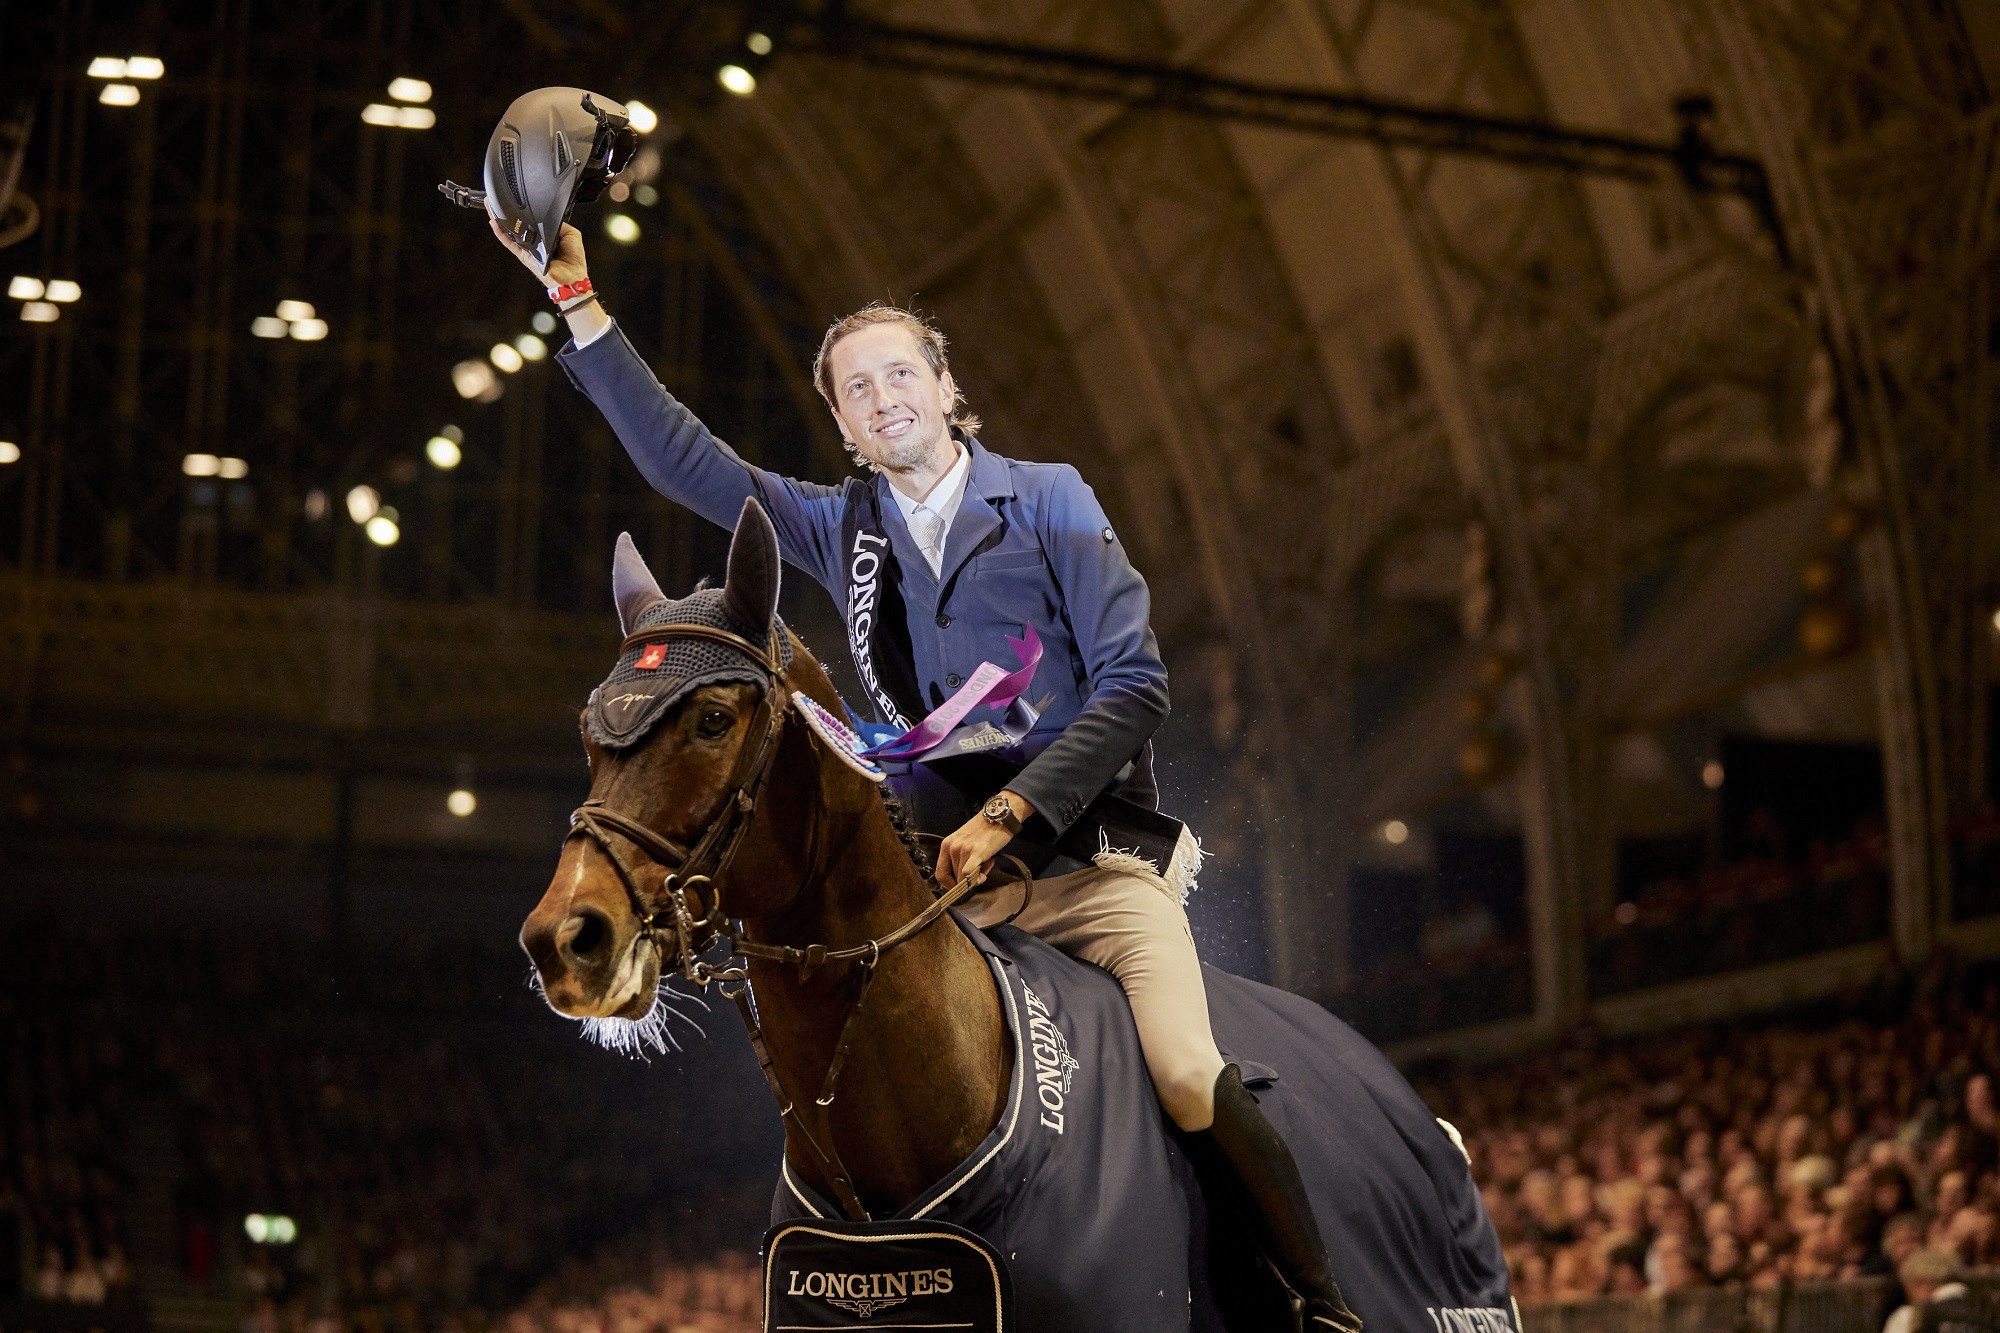 Fuchs takes over from fellow Swiss Guerdat as world number one show jumper